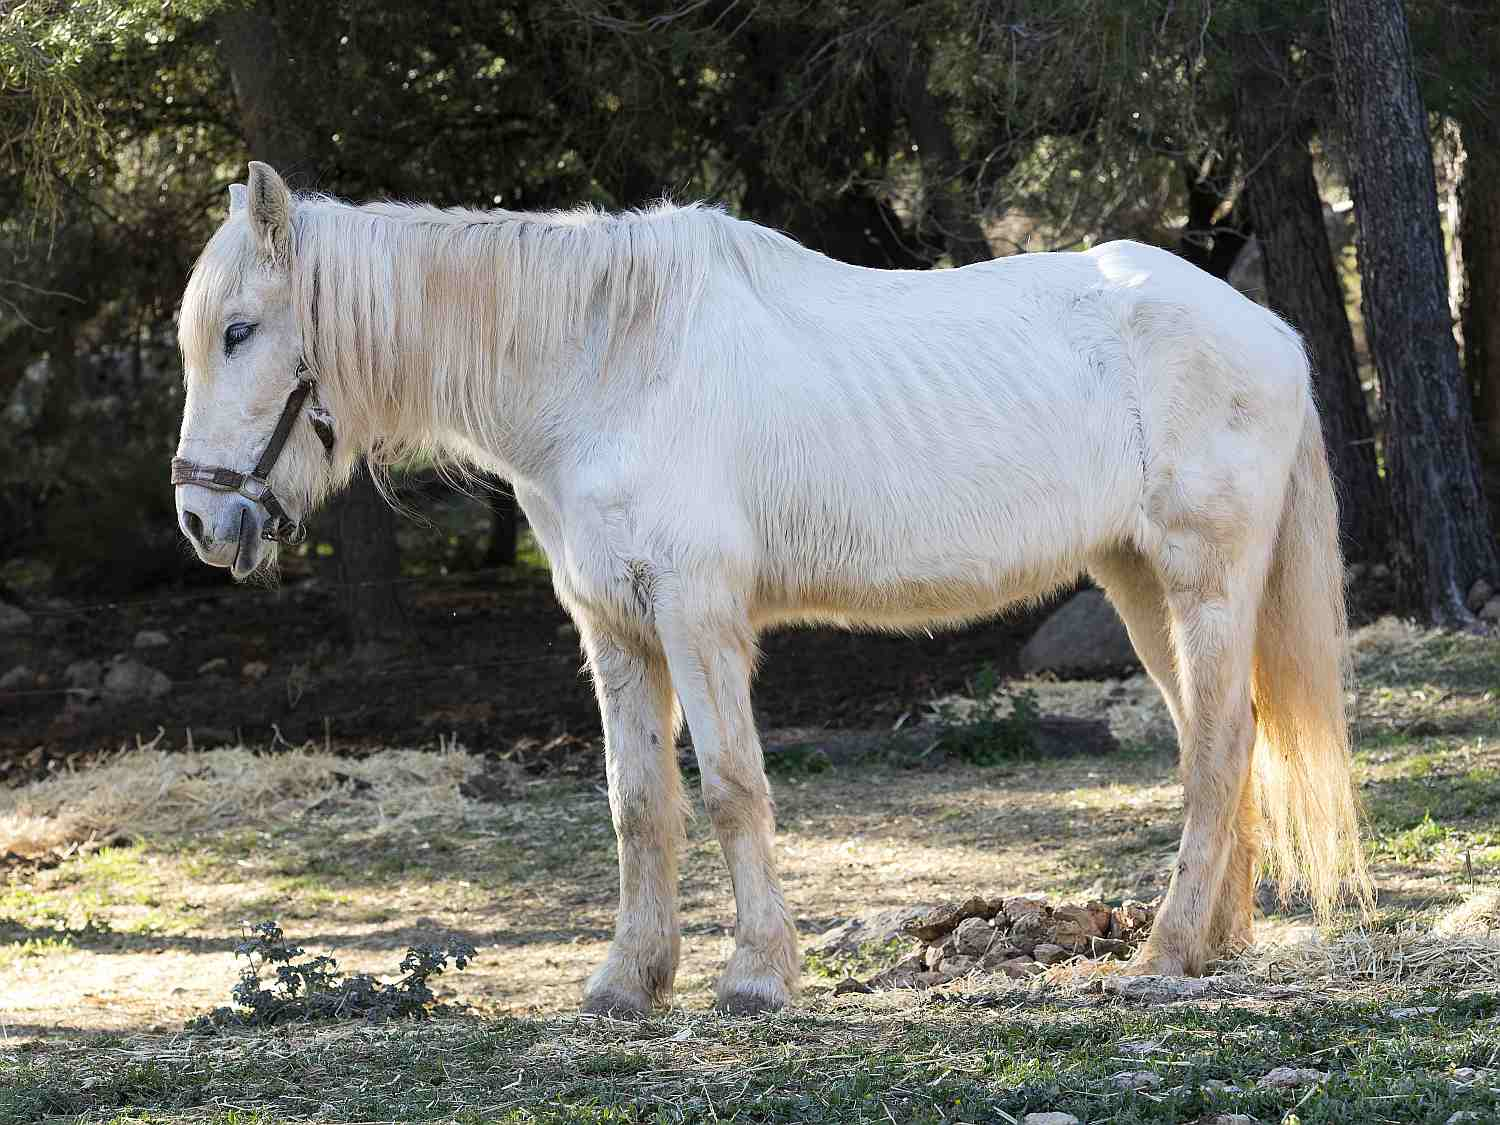 Side view of white pony with ribs showing and long mane.